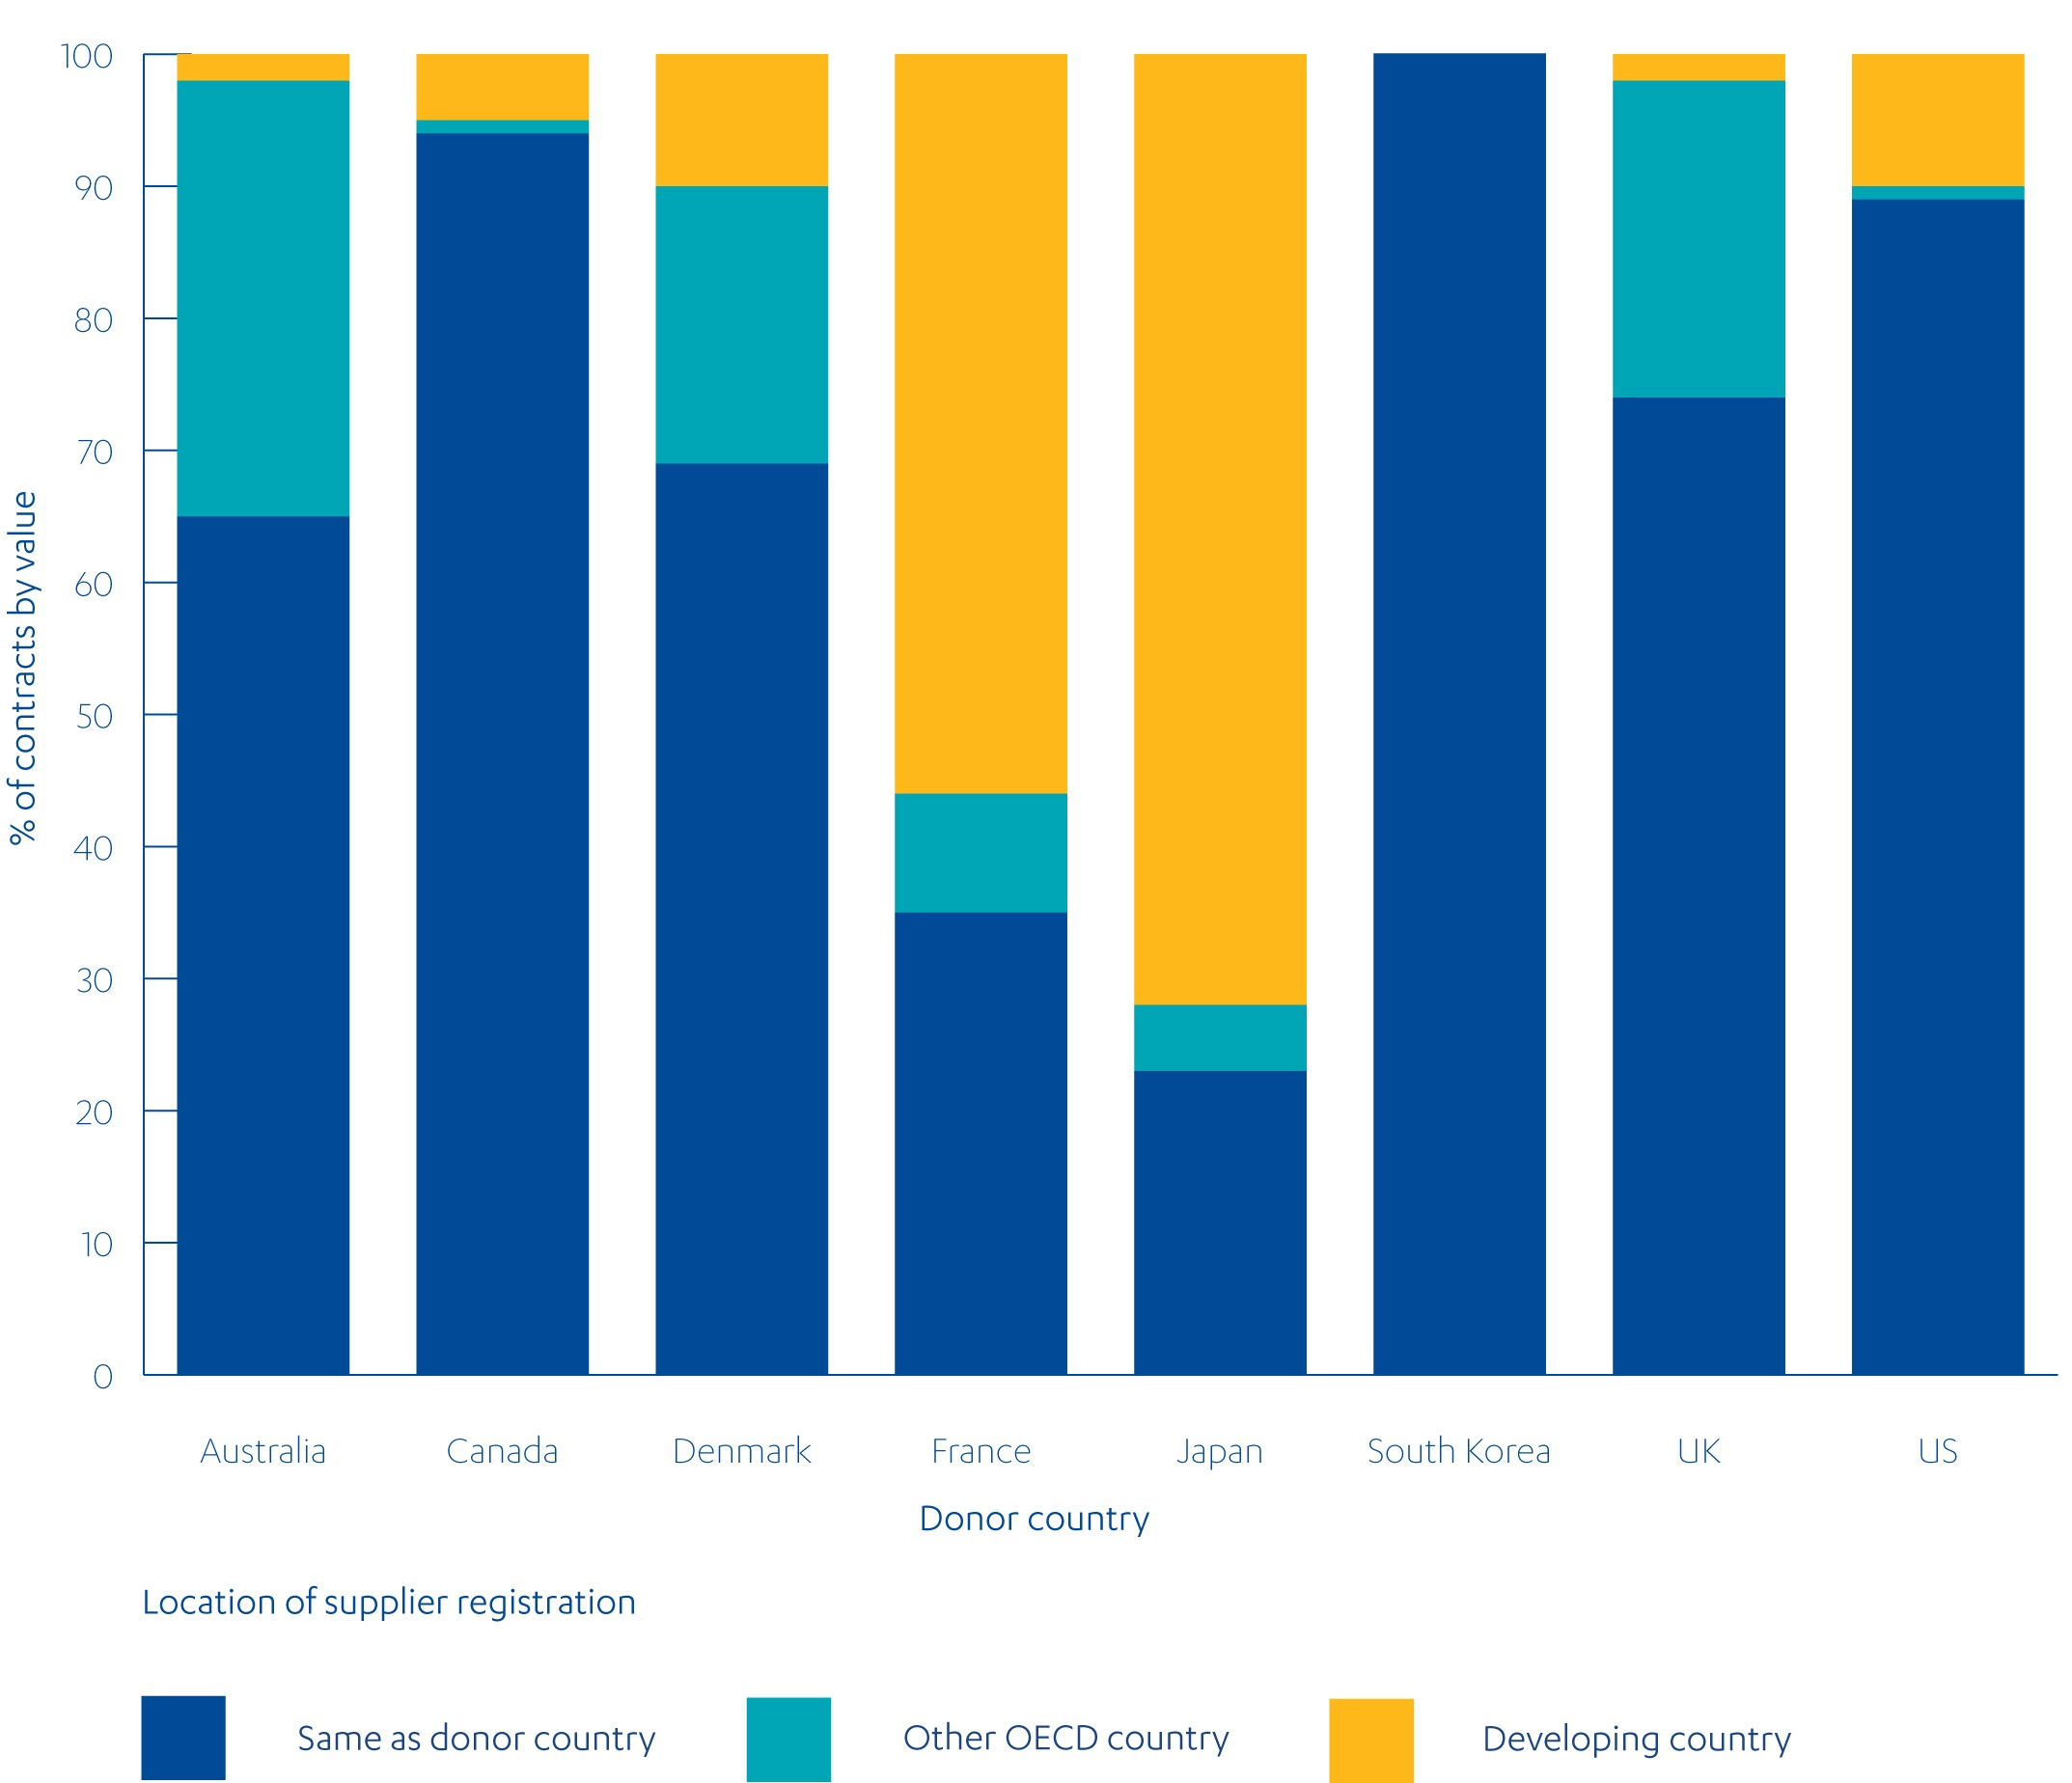 Achieving value for money through procurement part 1 dfids figure 6 location of supplier registration in a sample of donor countries in 2013 malvernweather Gallery